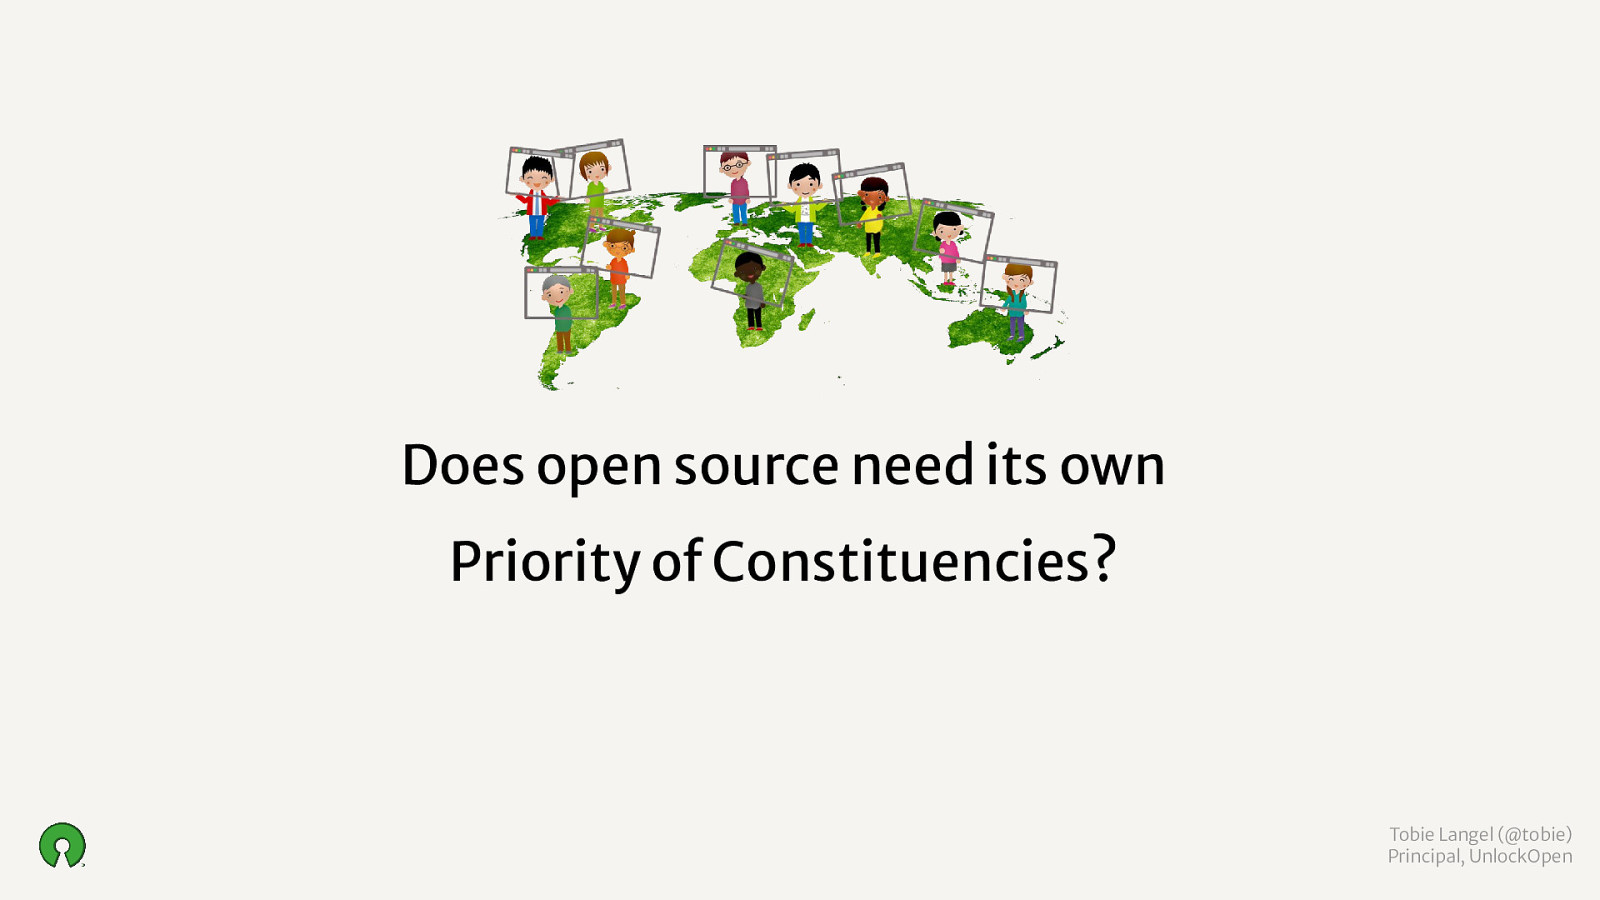 Does open source need its own Priority of Constituencies?